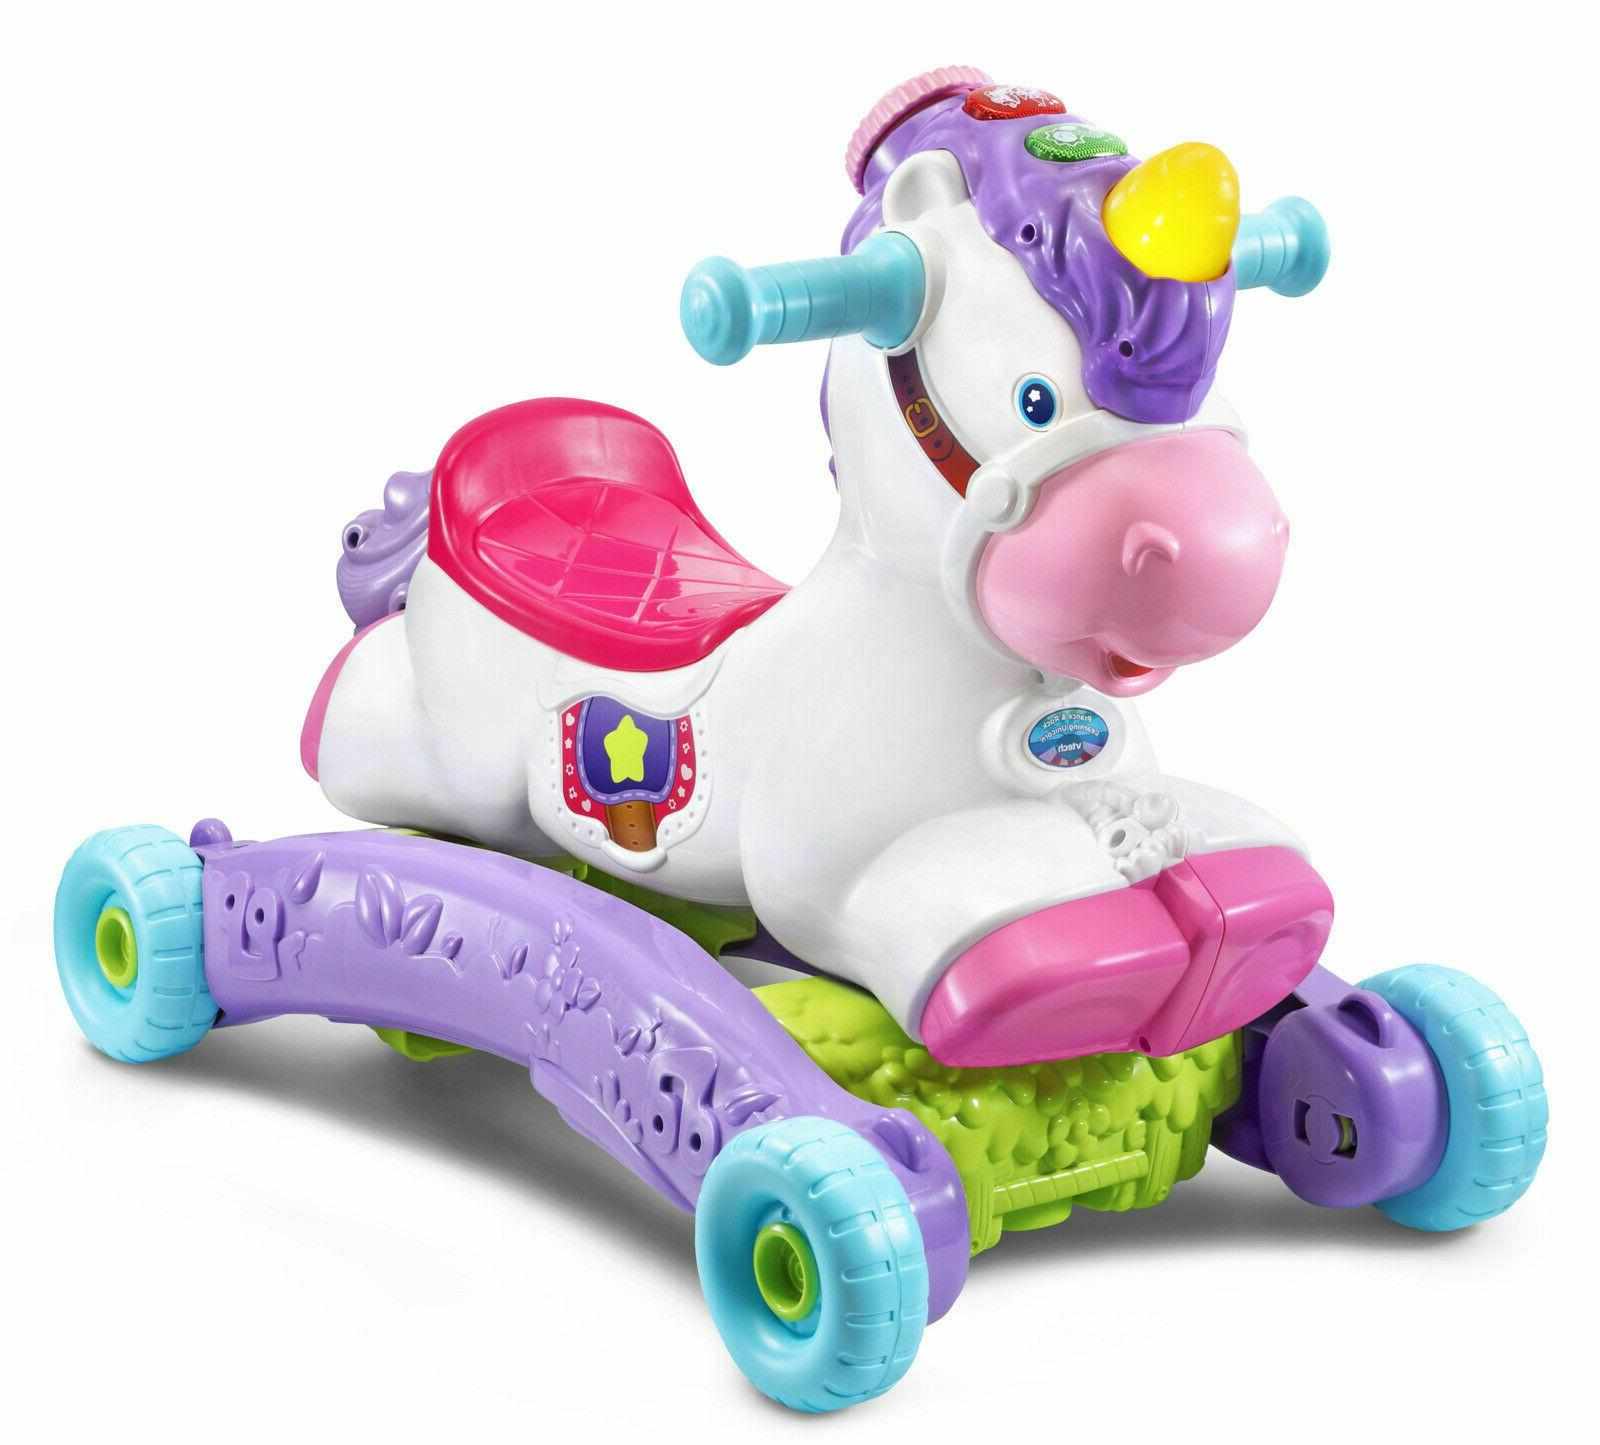 Baby Interactive Learning Unicorn Toy Ride On Toddler